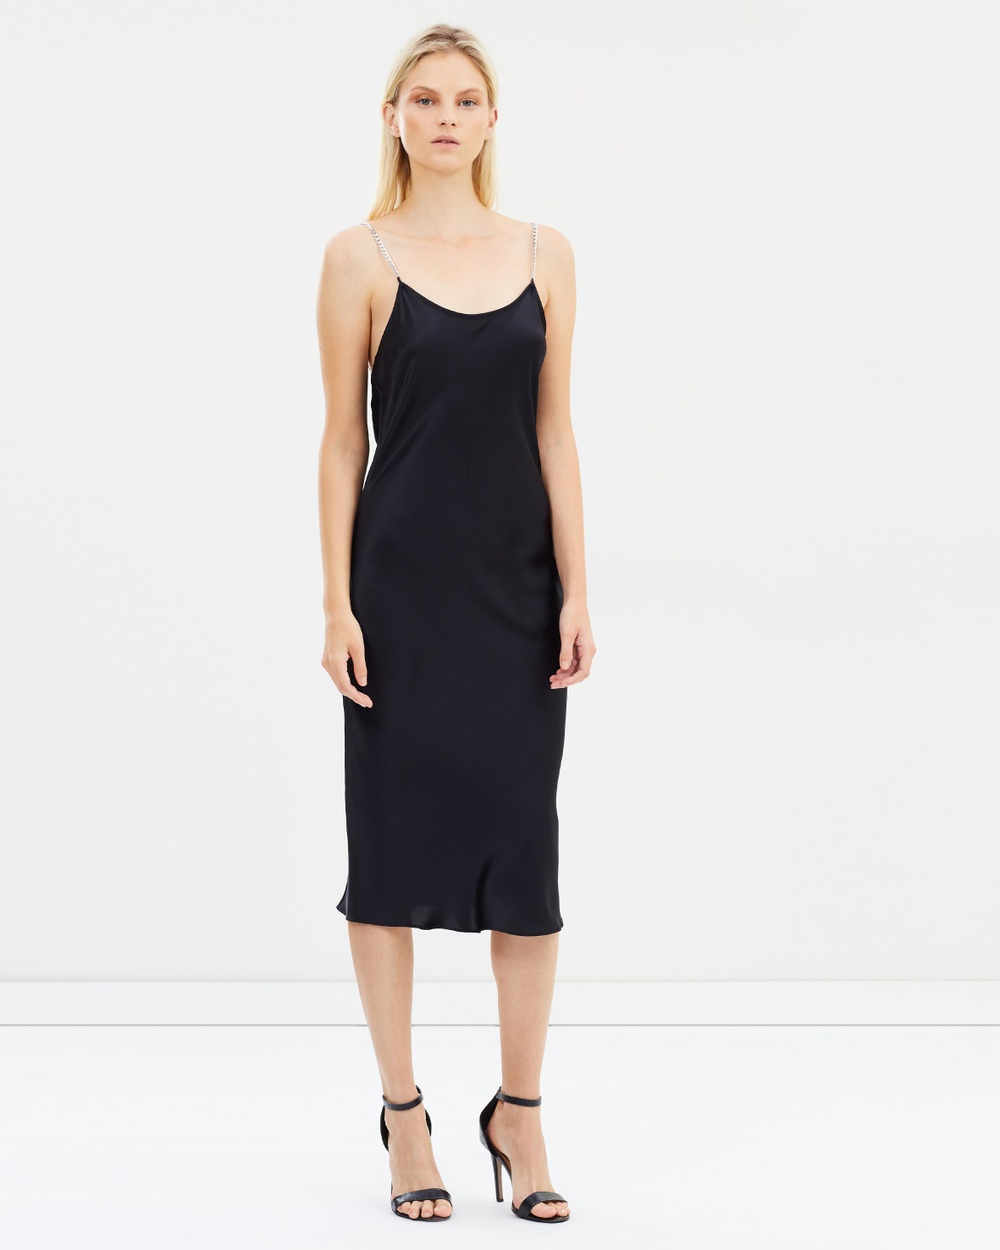 Michael Lo Sordo Bias Chain Slip Dress Dresses Black Bias Chain Slip Dress